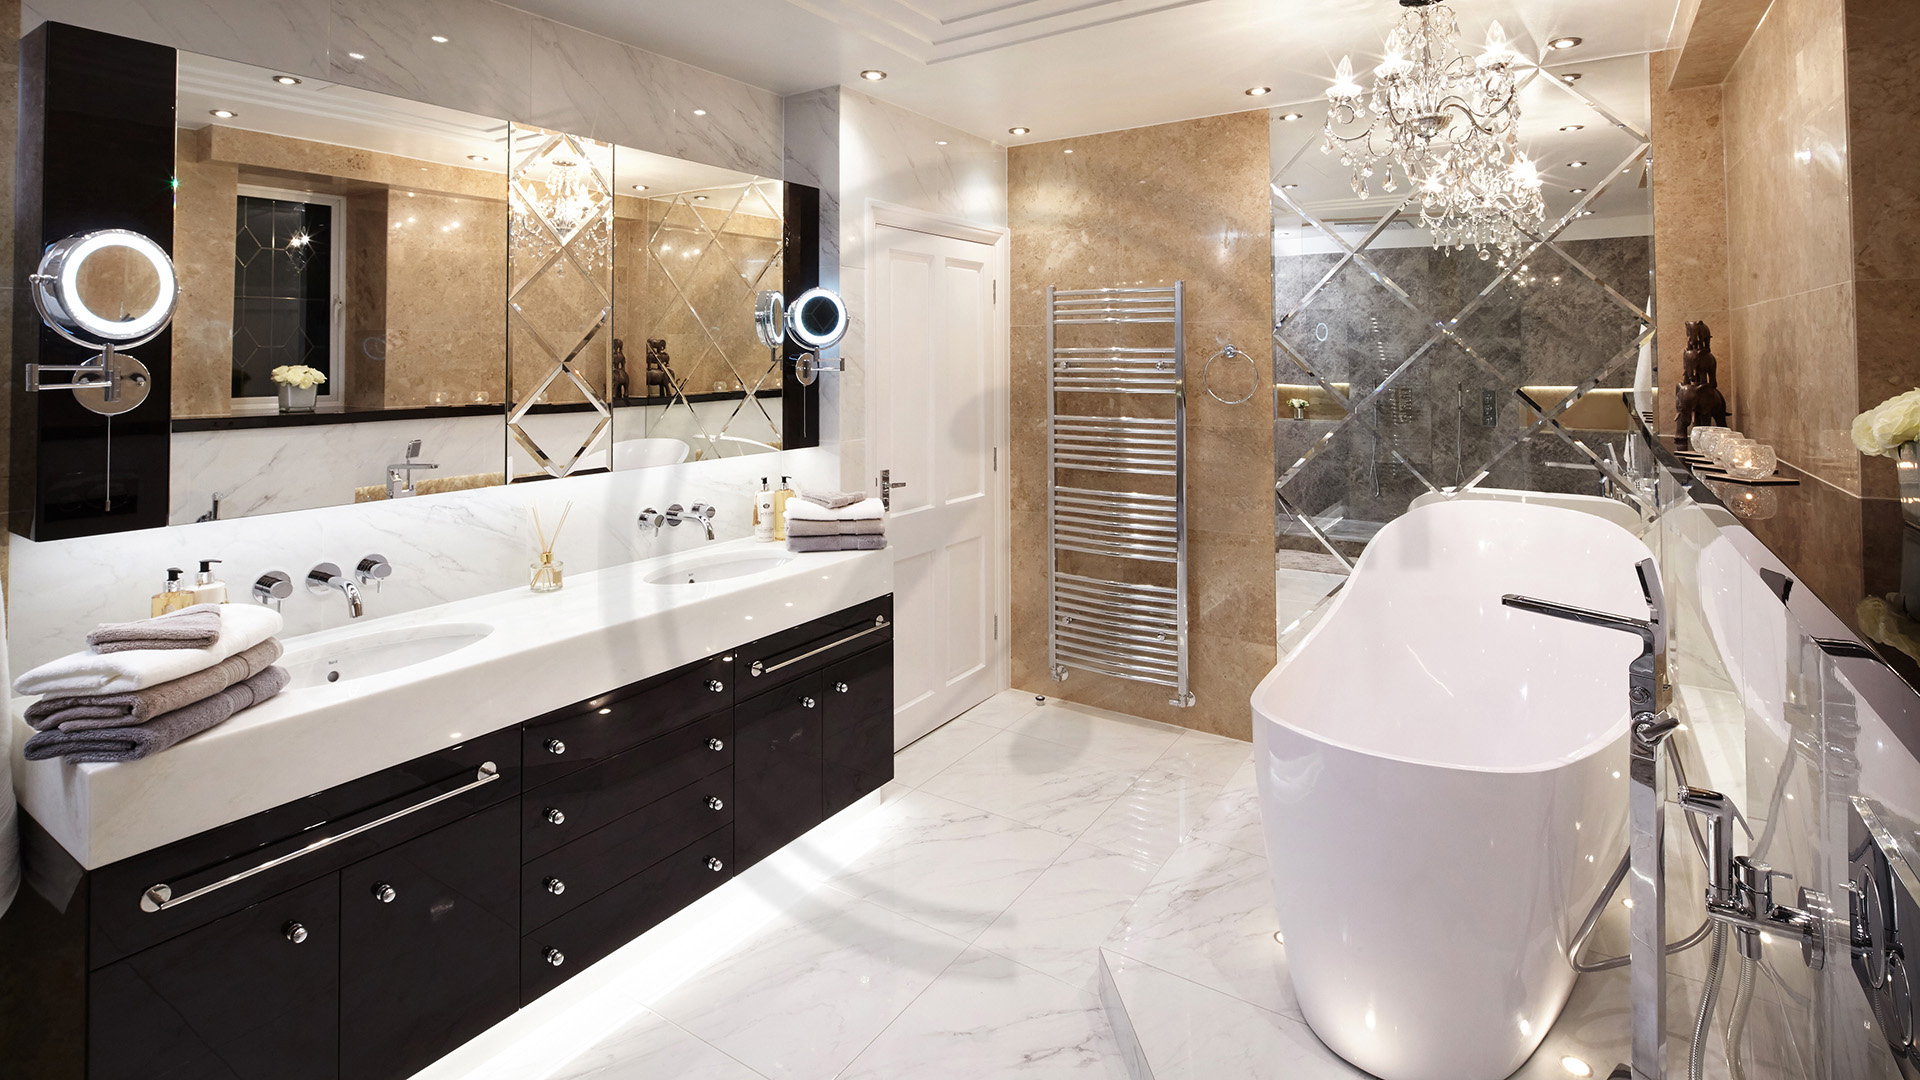 interior-designer-London-interior design loughborough_master bathroom with free standing bath